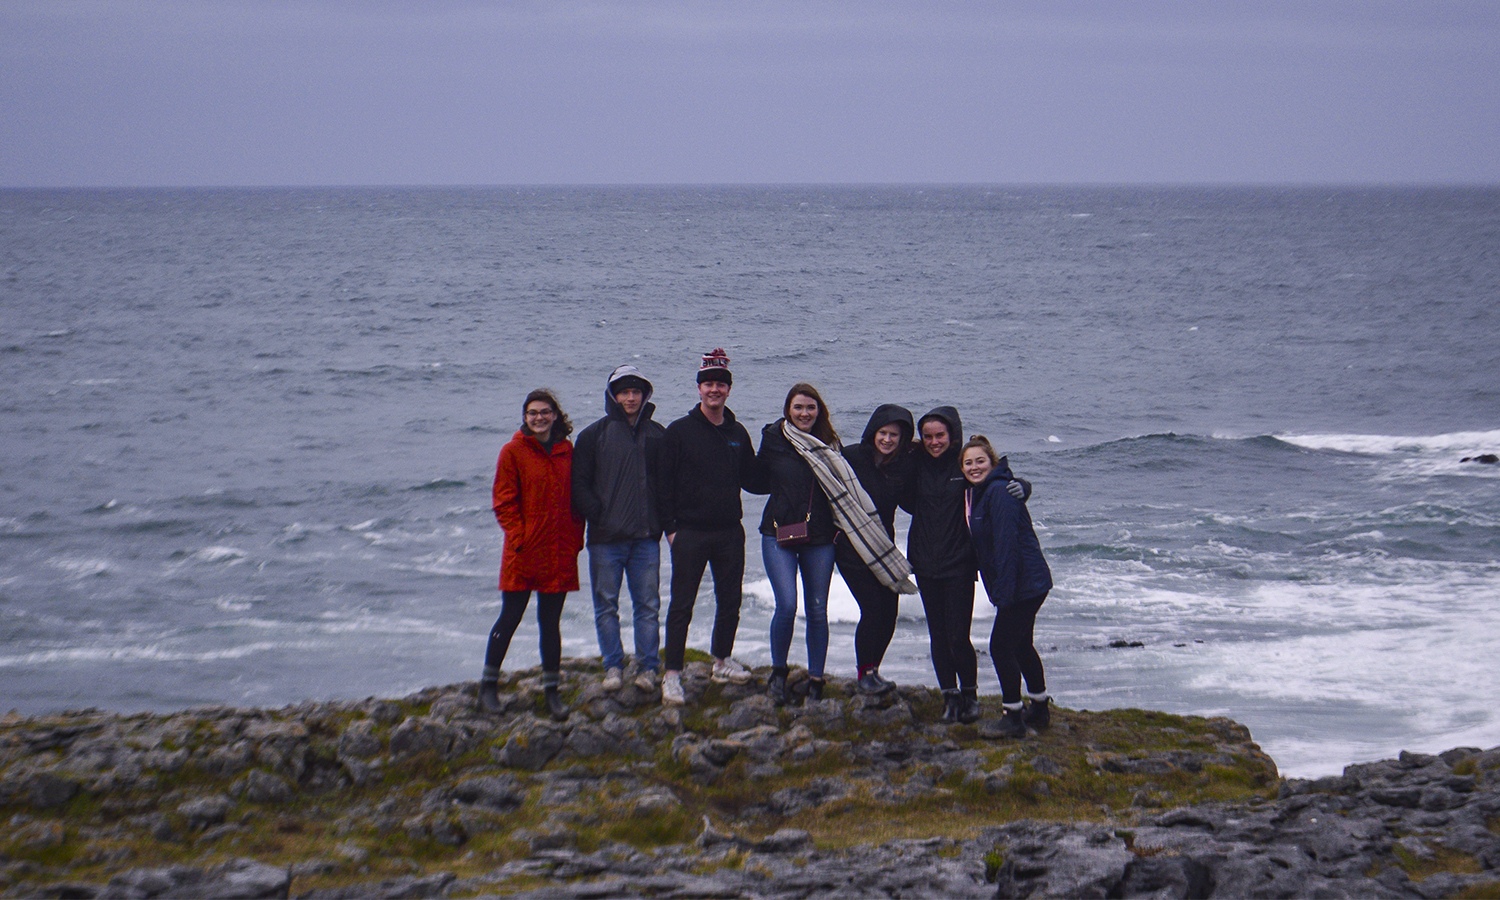 Edie Falk '21, Ryan Carey '20, Dylan McDonald '20, Lindsay Carr '20, Genevieve Carpenter '20, Eileen Rath '20 and Bennett Tierney '20 stand at the Burren National Park on the West Coast of Ireland.